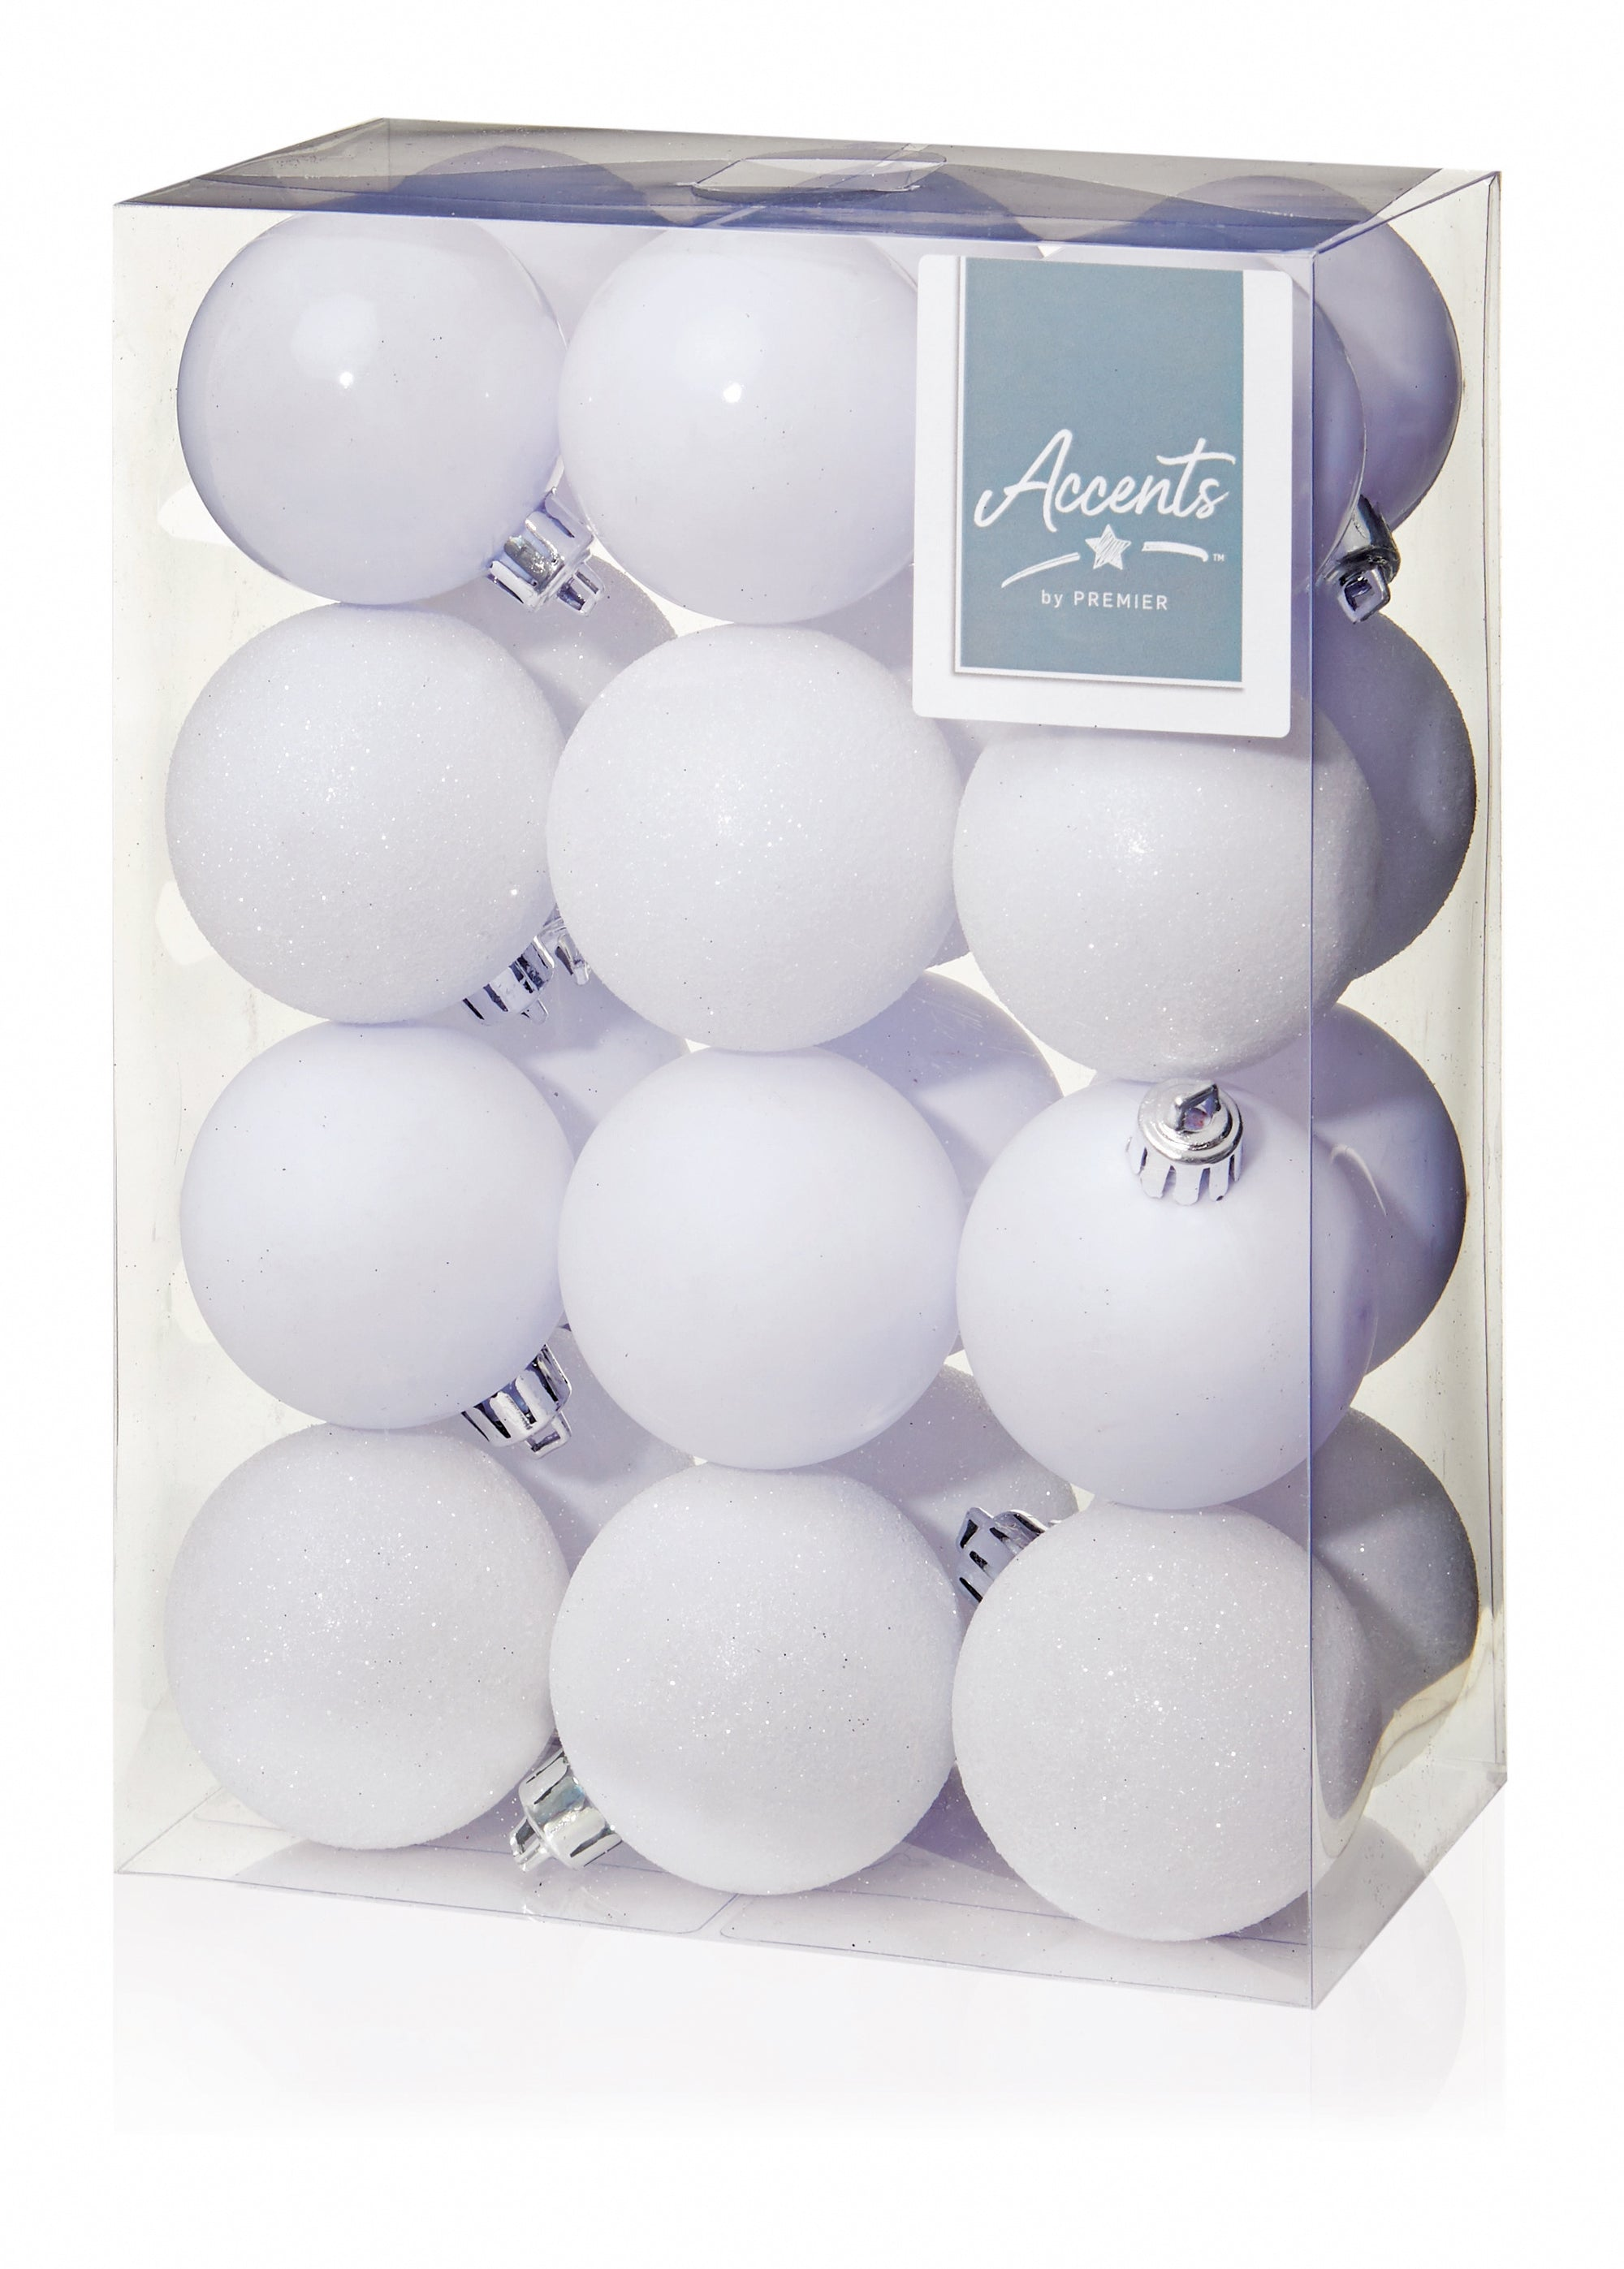 24x 60mm Multi-Finish White Baubles